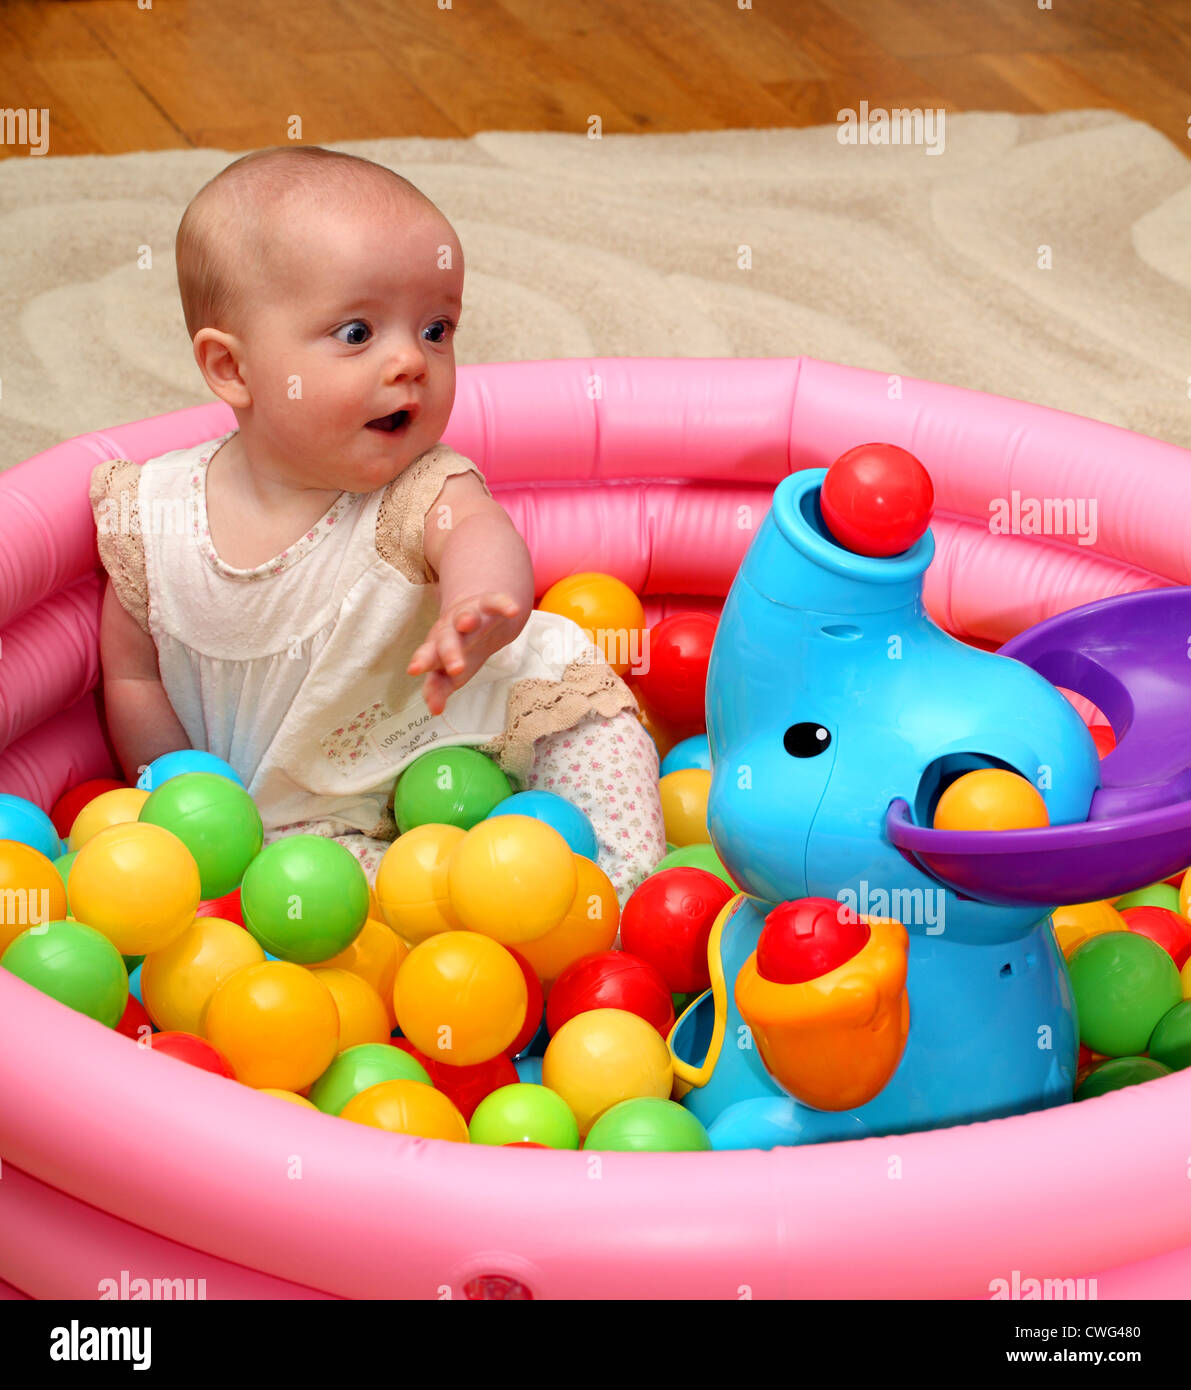 6 Month Old Baby Toys A 6 Month Old Baby Girl Looks Surprised As A Ball Pops Out